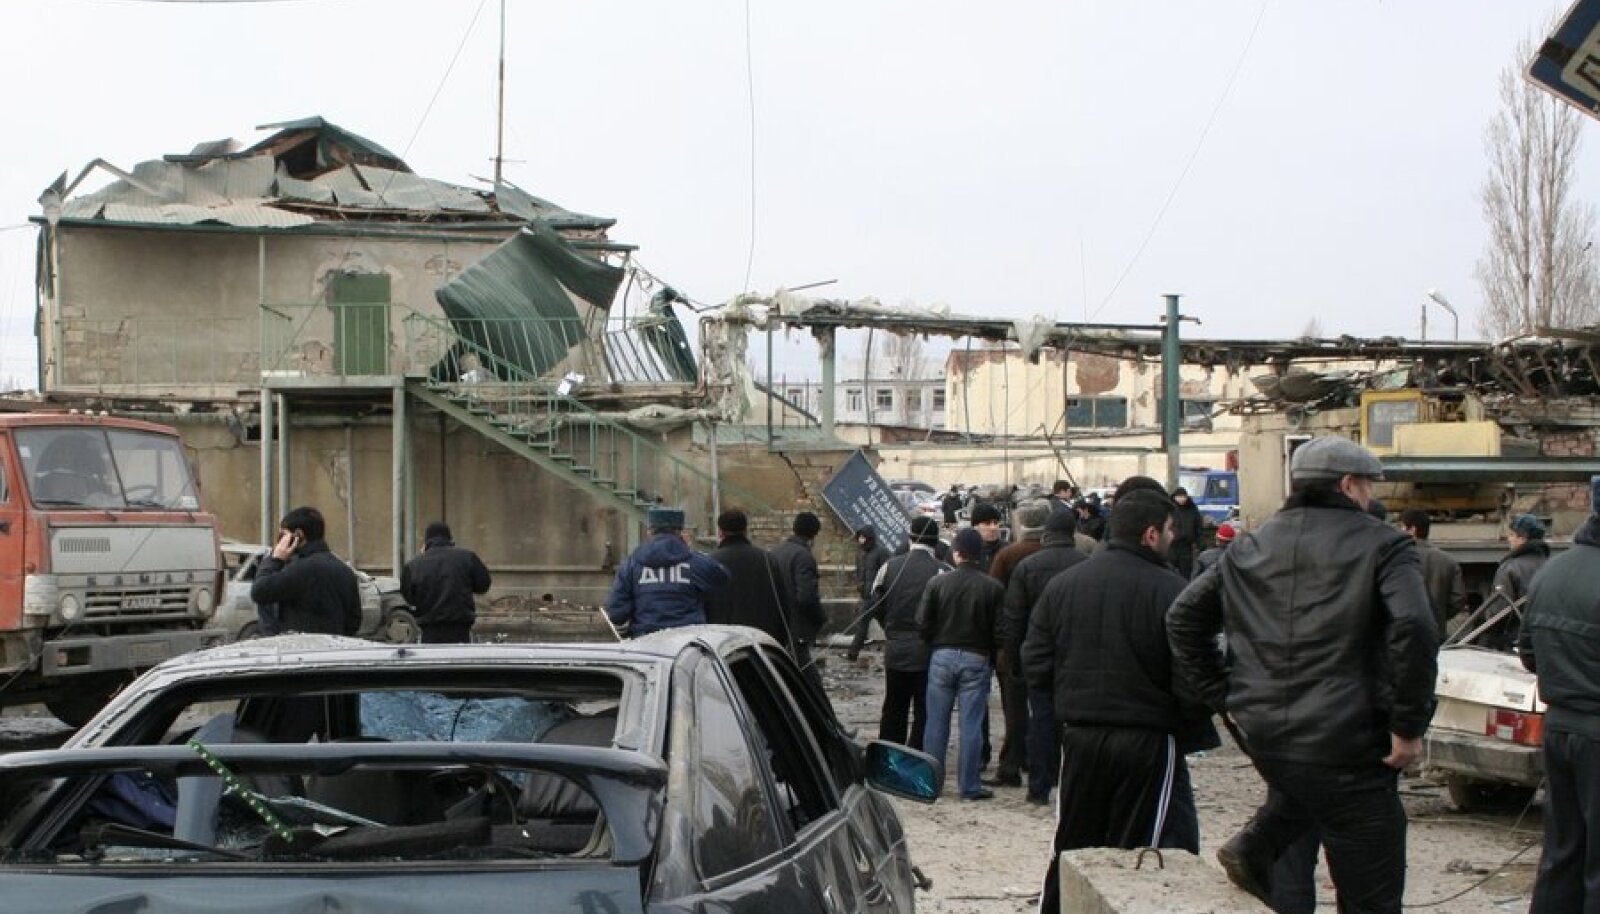 A general view shows the site of a bomb explosion at a special traffic police depot in Russia